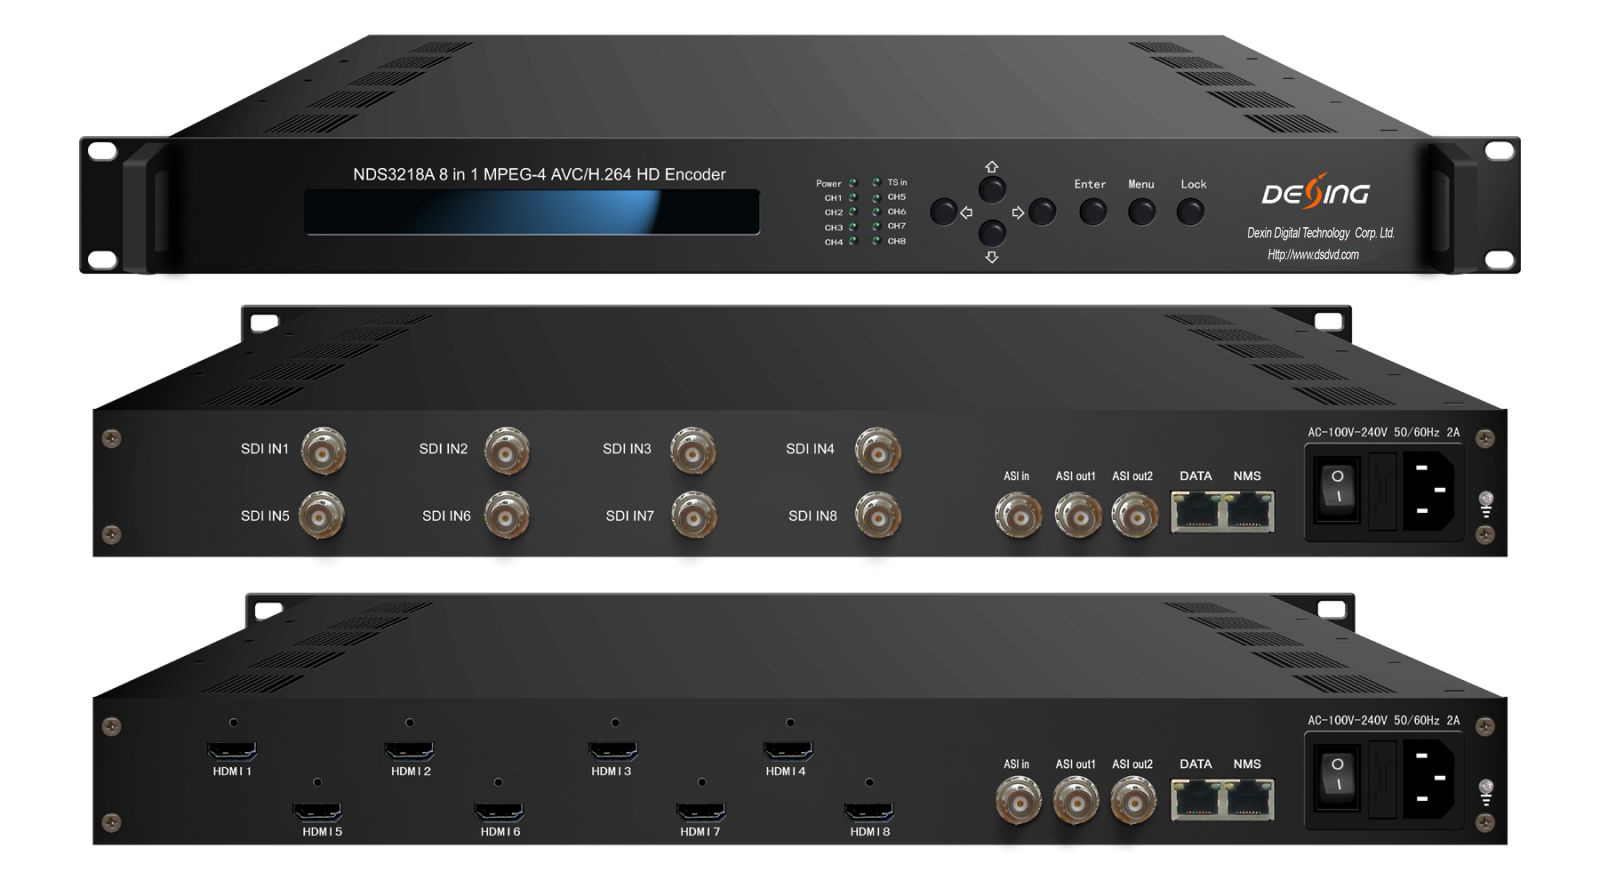 NDS3218A full 1080p hd encoder